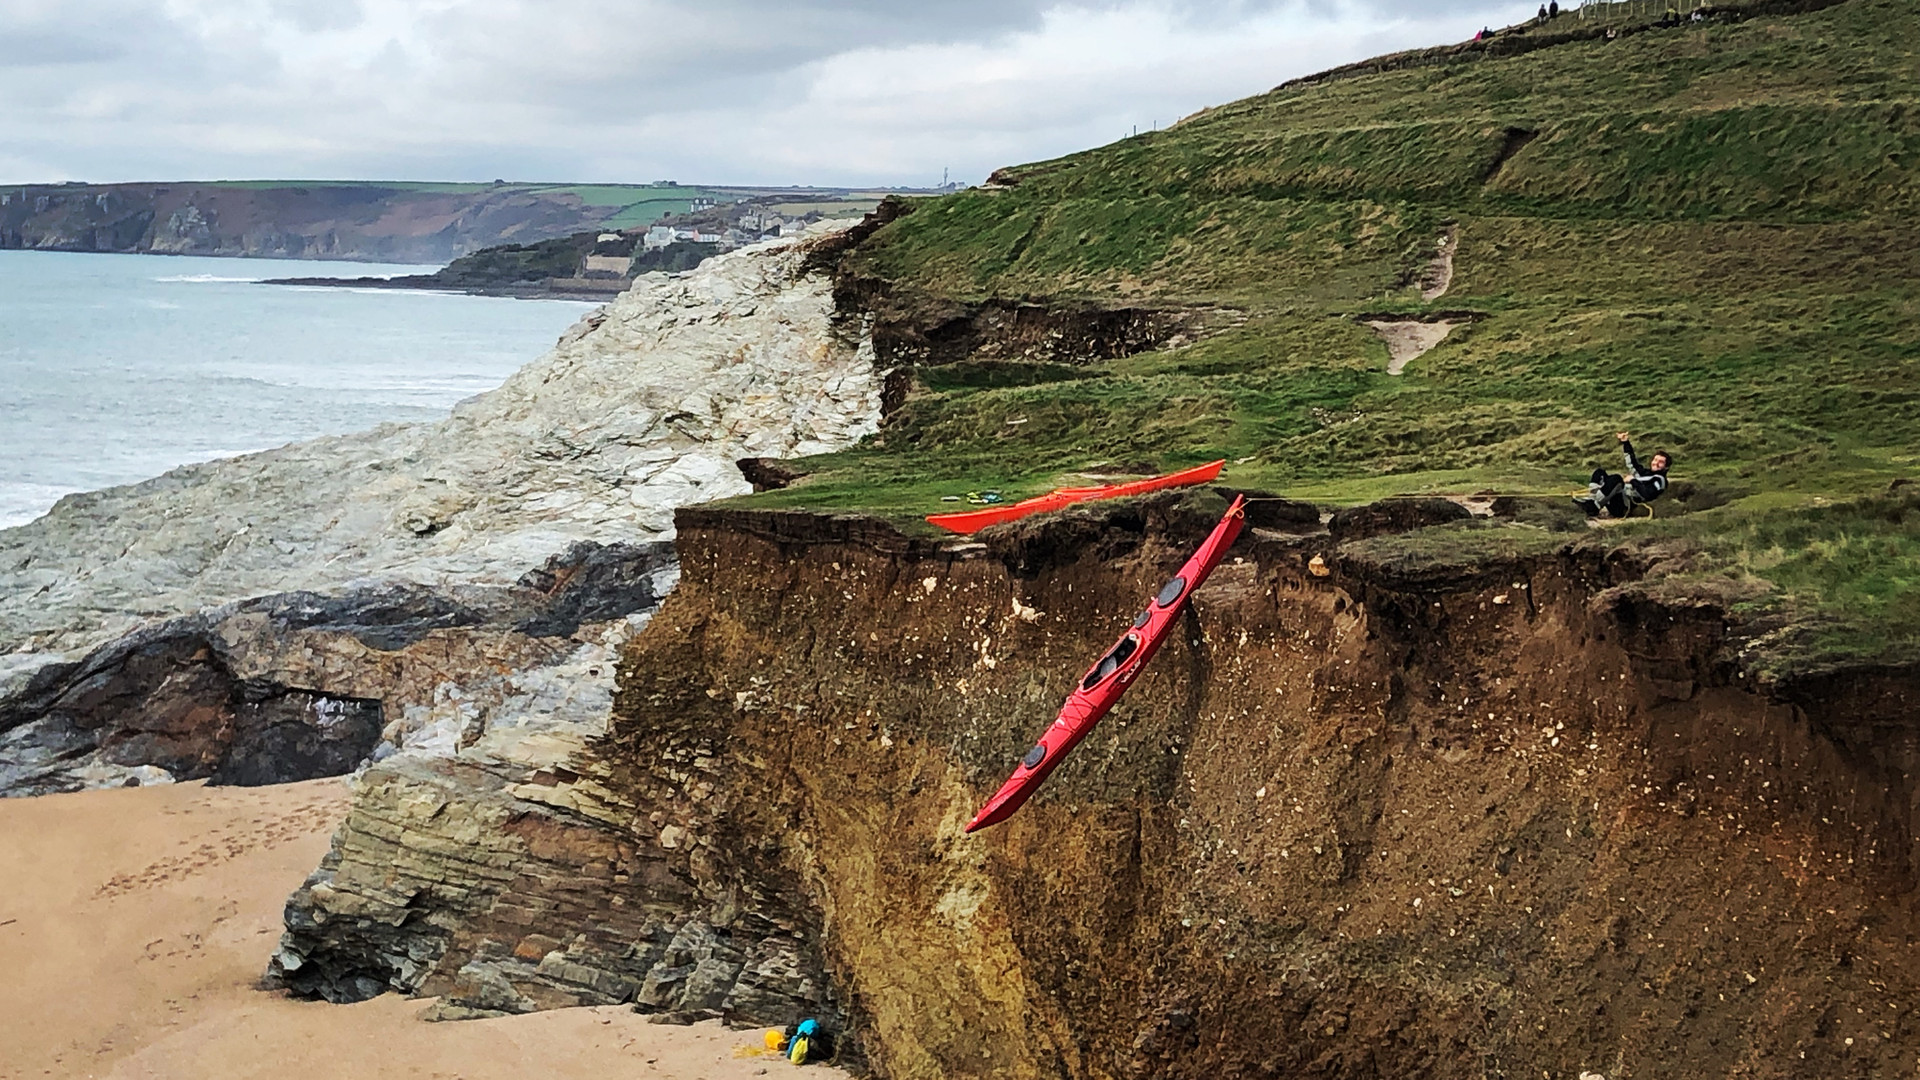 Lowering kayaks onto the beach